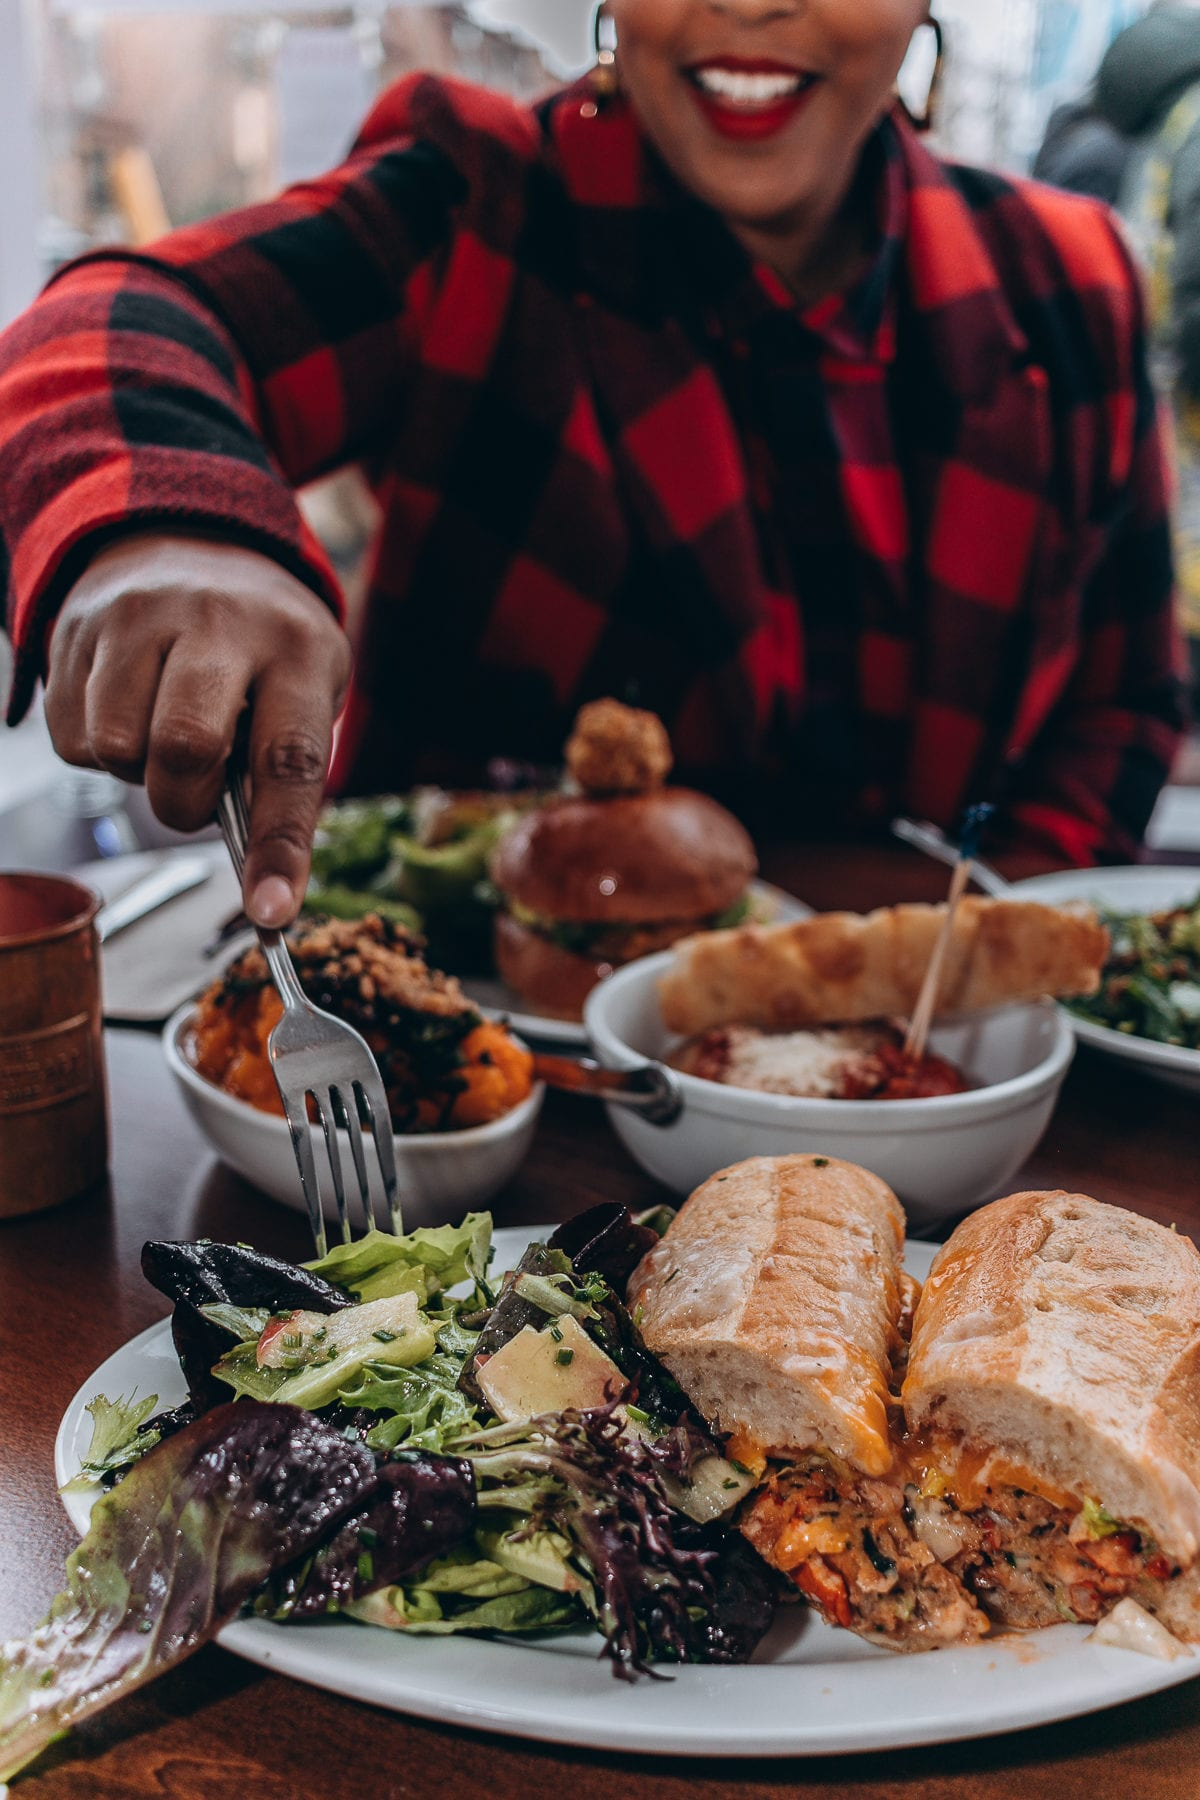 top washington dc blogger jen jean-pierre visits the meatball shop on 14th street and offers insight on what to order